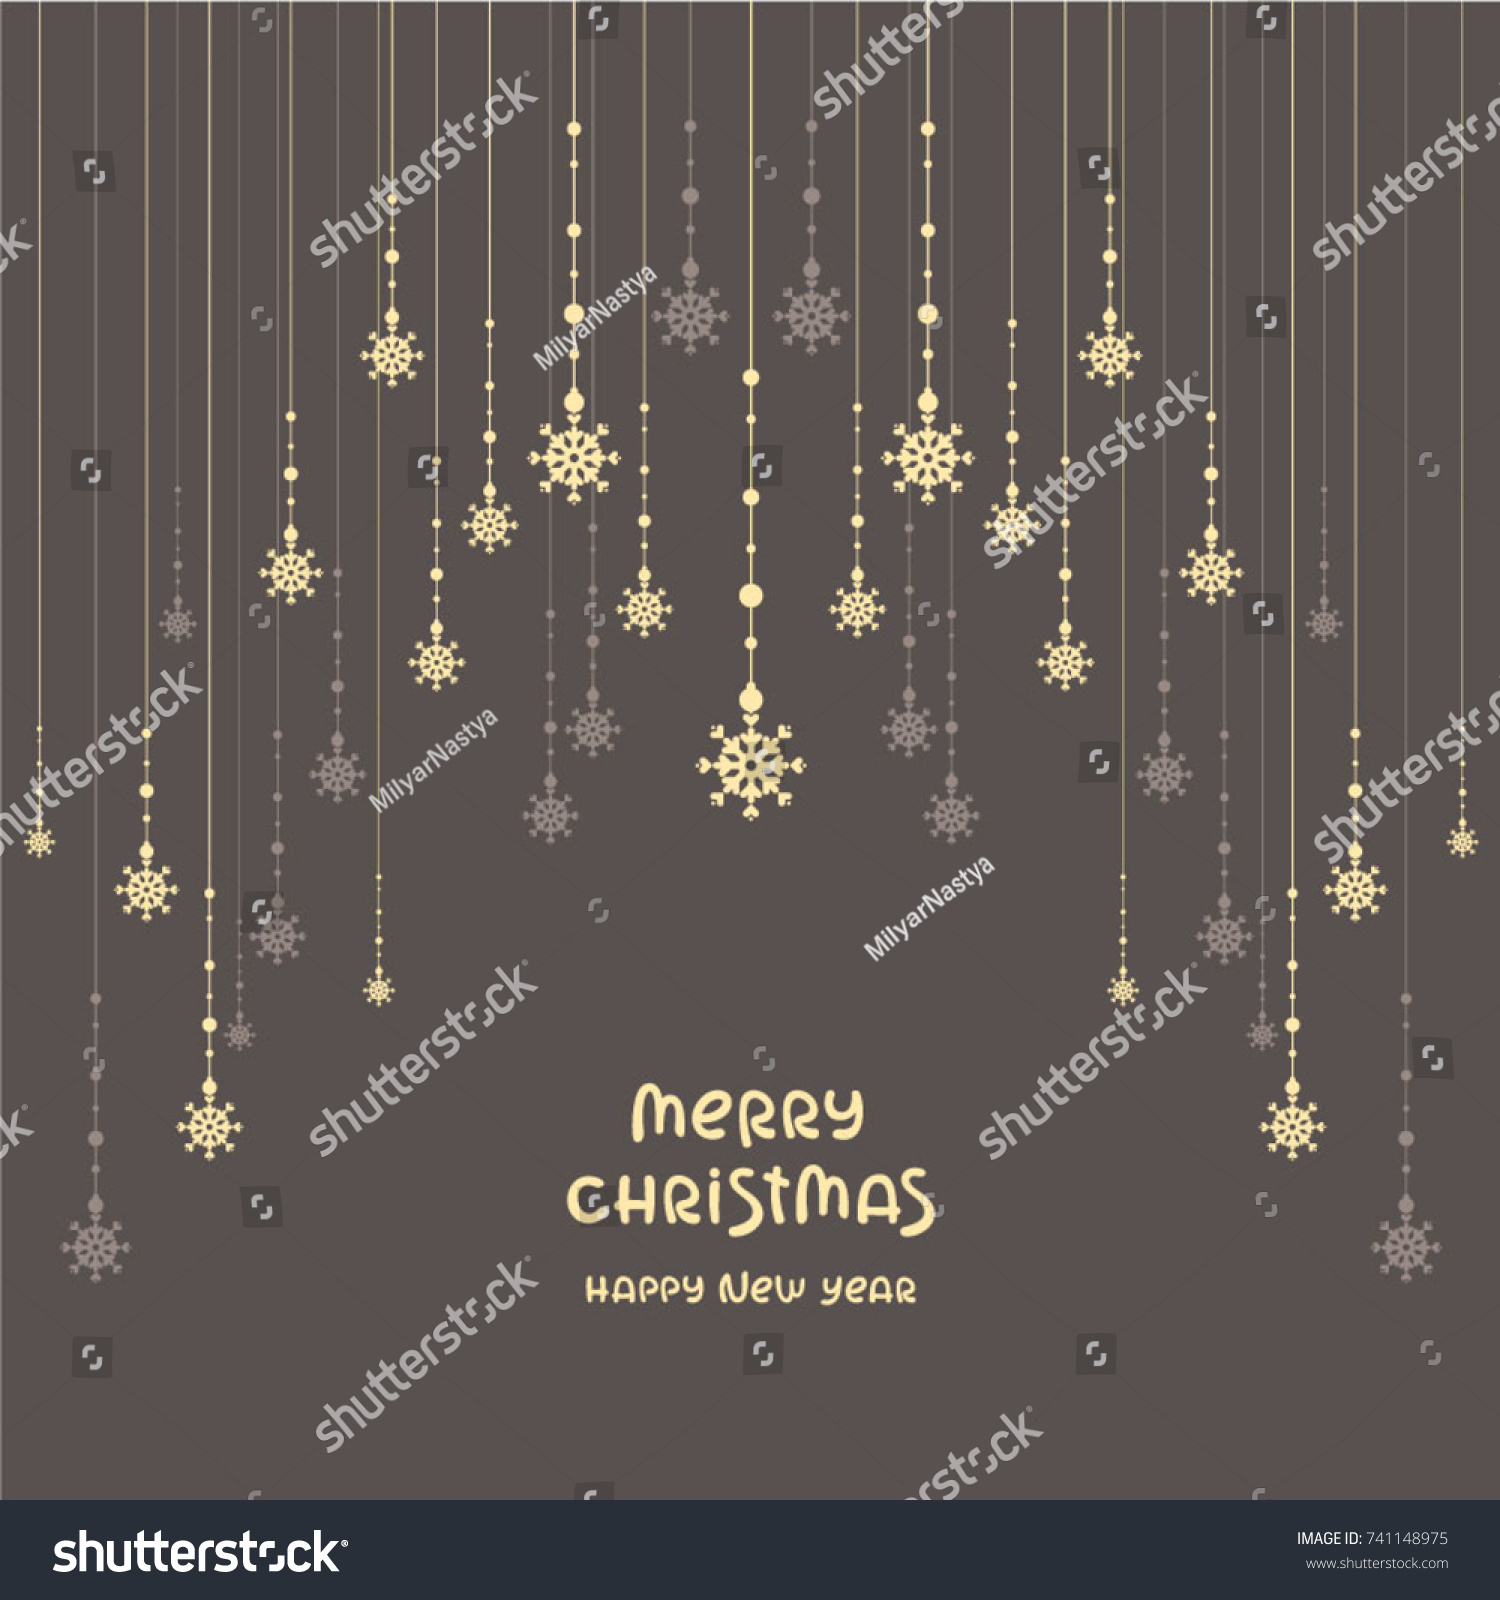 Elegant Christmas Background Snowflakes Garland Template Stock